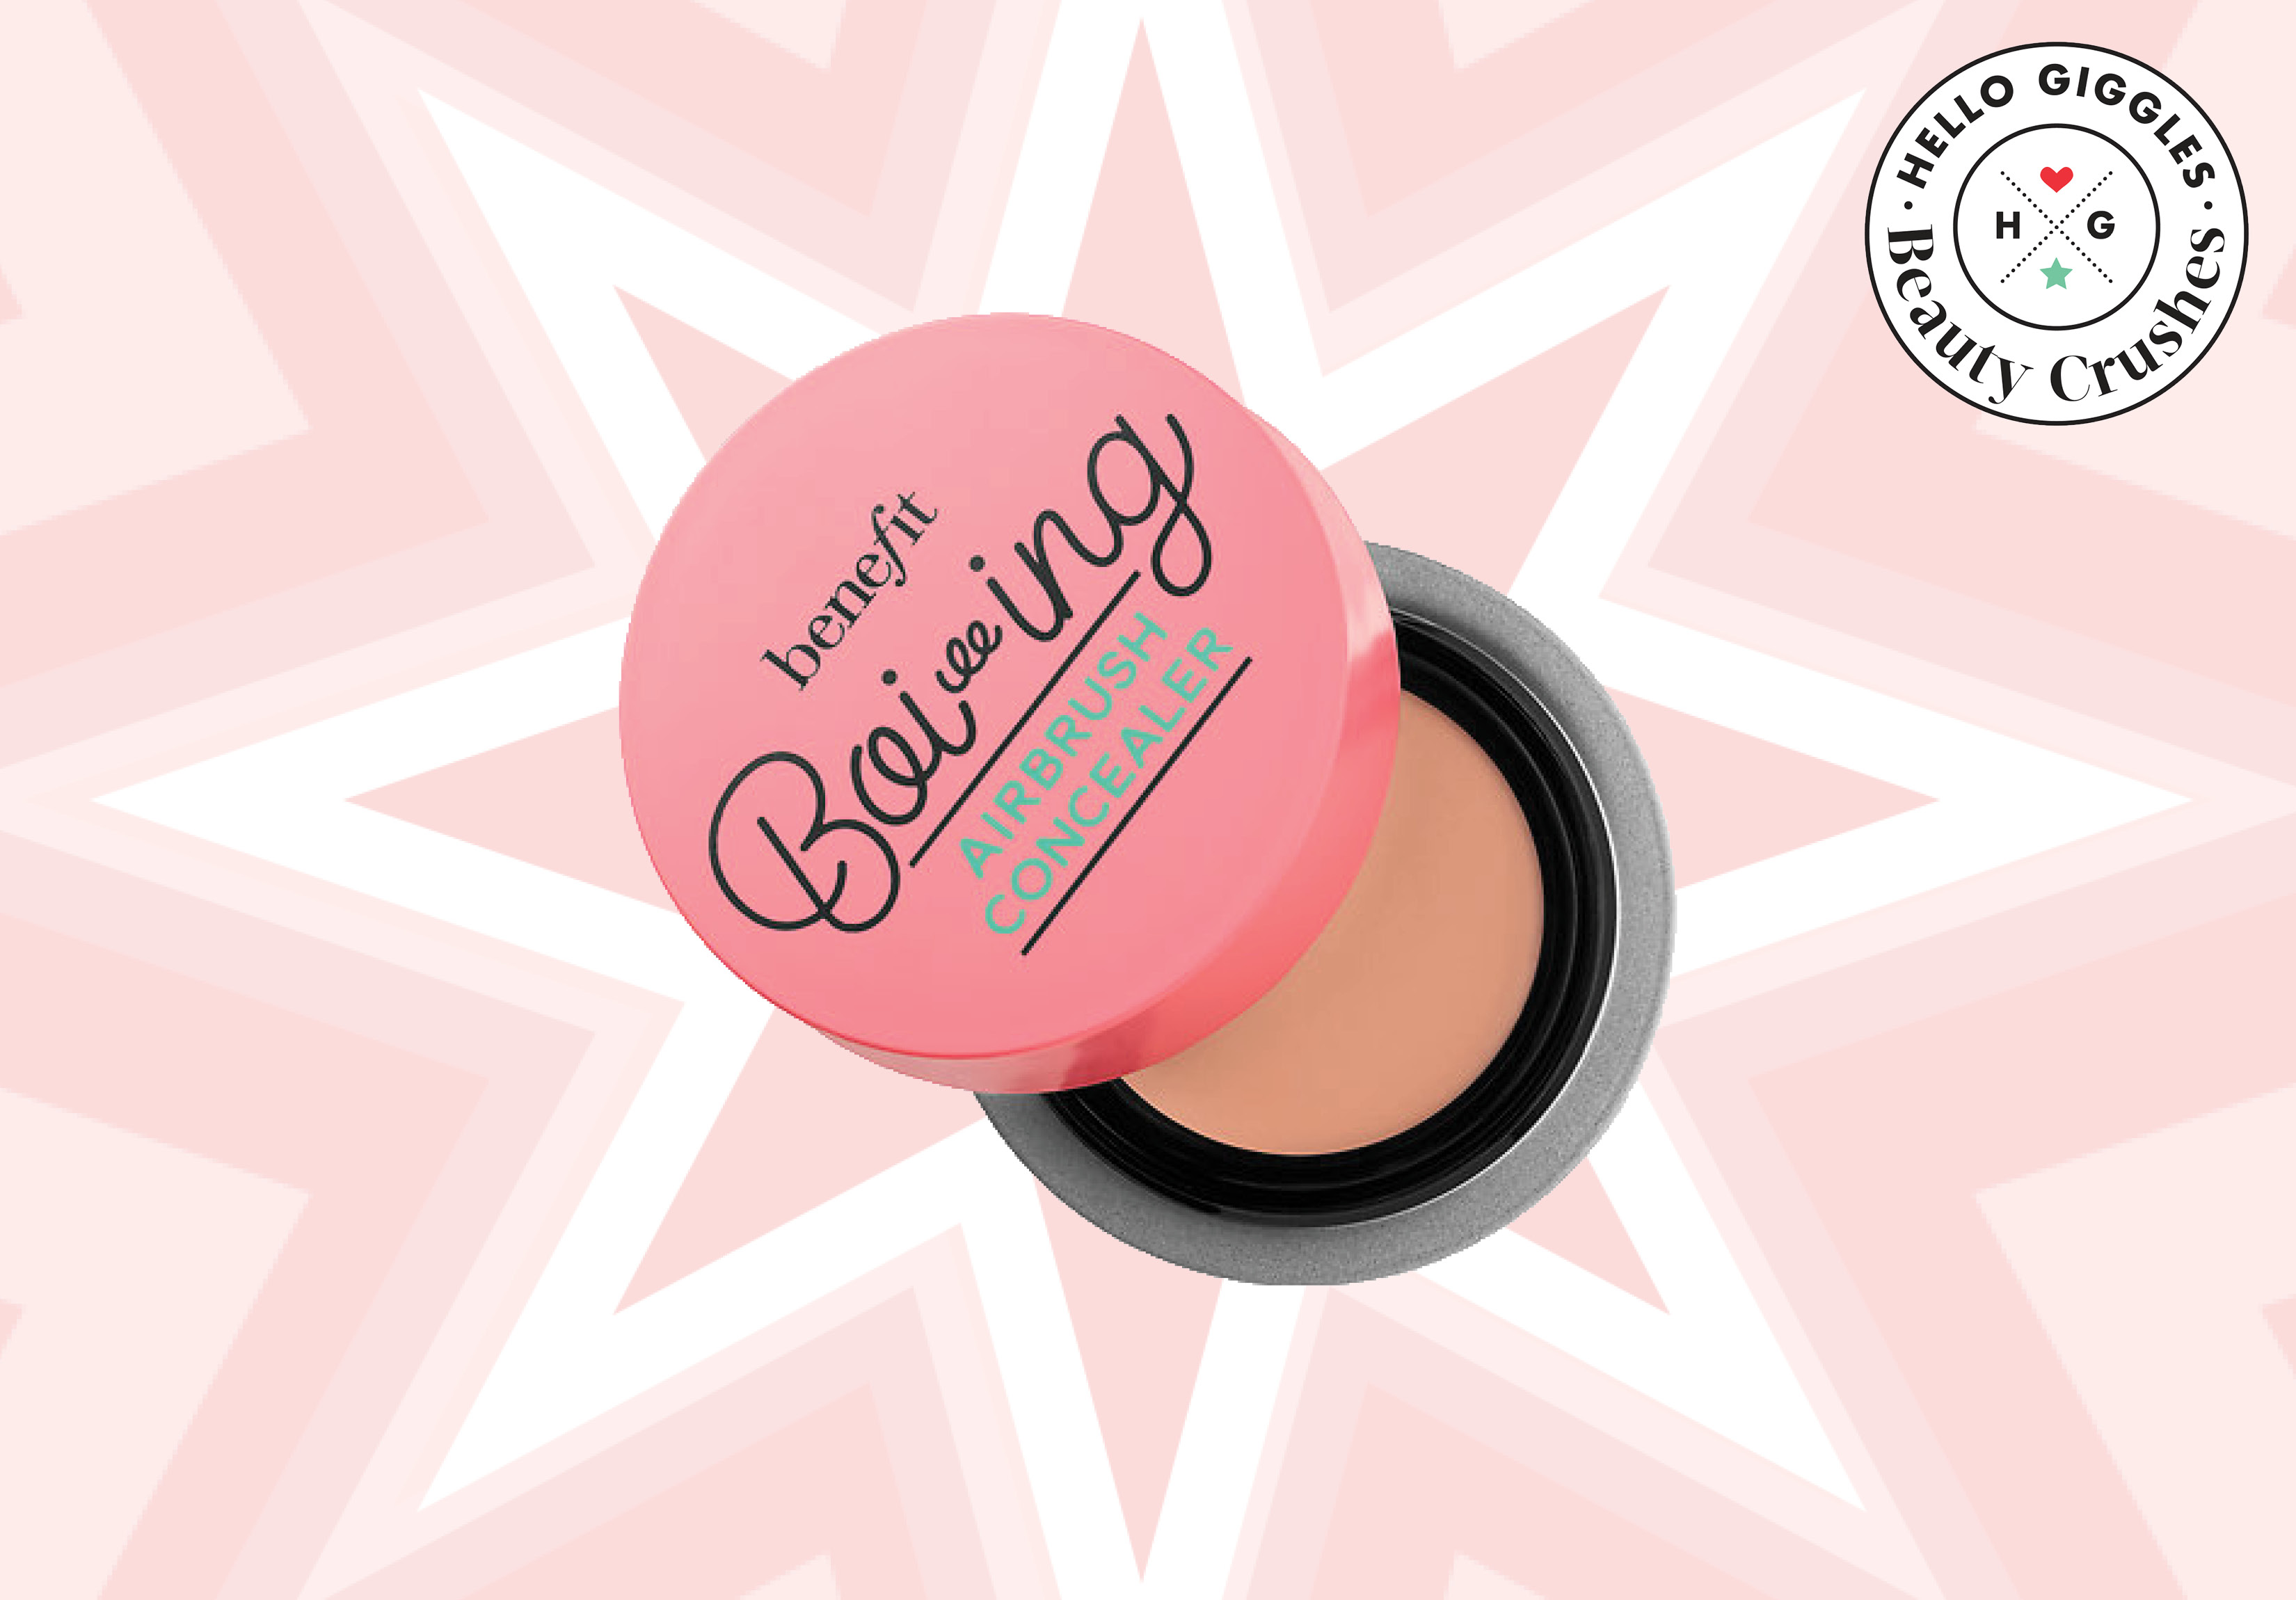 These are the top 10 beauty products we crushed on in July